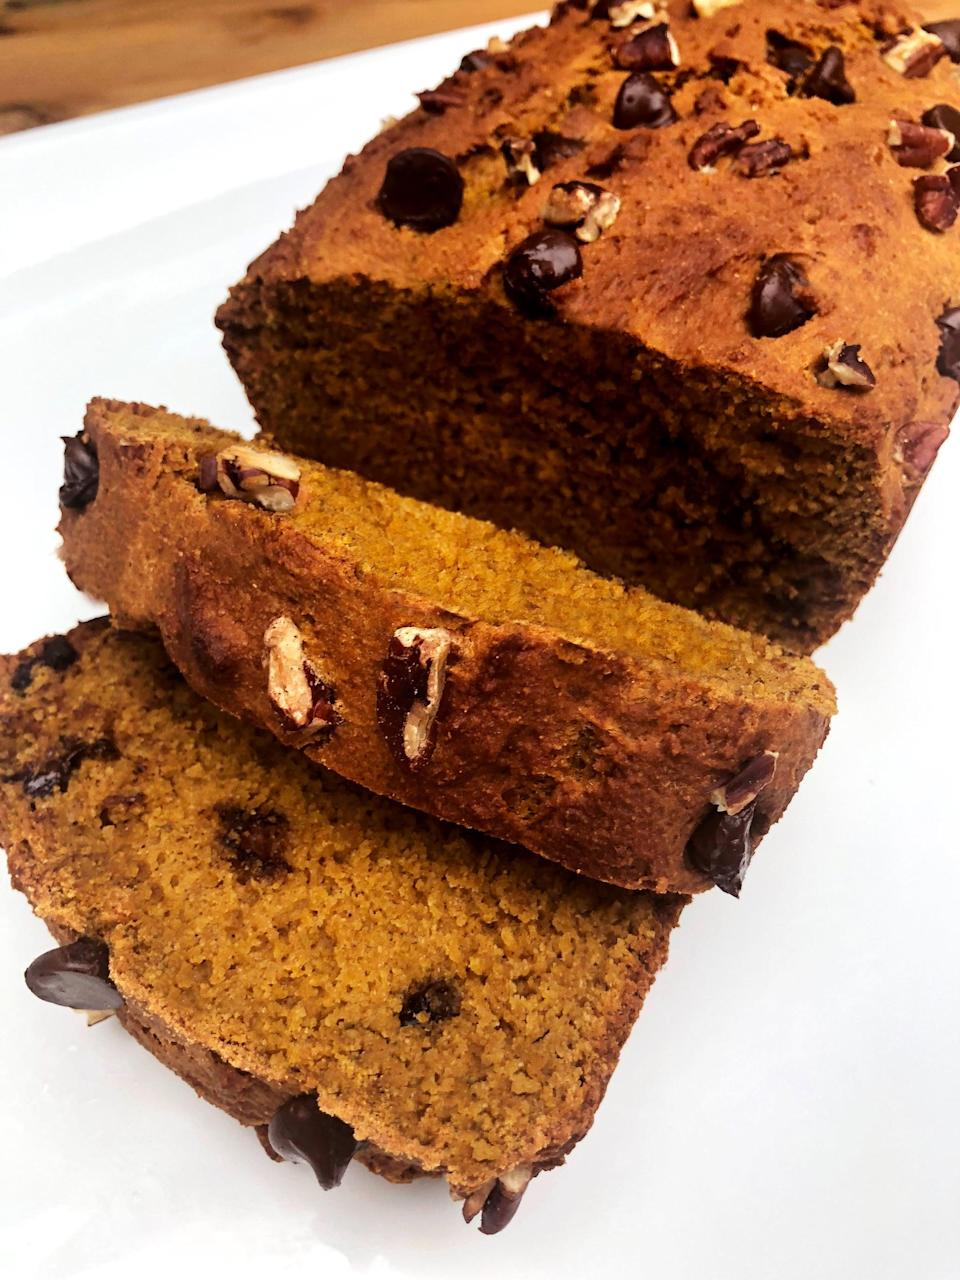 "<p>When you want your house to feel as cozy as slipping on a sweater in the fall, turn on your oven and bake this pumpkin bread.</p> <p><strong>Calories:</strong> 200 per slice<br> <strong>Protein:</strong> 9.2 grams</p> <p><strong>Get the recipe:</strong> <a href=""https://www.popsugar.com/fitness/Protein-Pumpkin-Bread-Recipe-45269886"" class=""link rapid-noclick-resp"" rel=""nofollow noopener"" target=""_blank"" data-ylk=""slk:chocolate chip protein-packed pumpkin bread"">chocolate chip protein-packed pumpkin bread</a></p>"